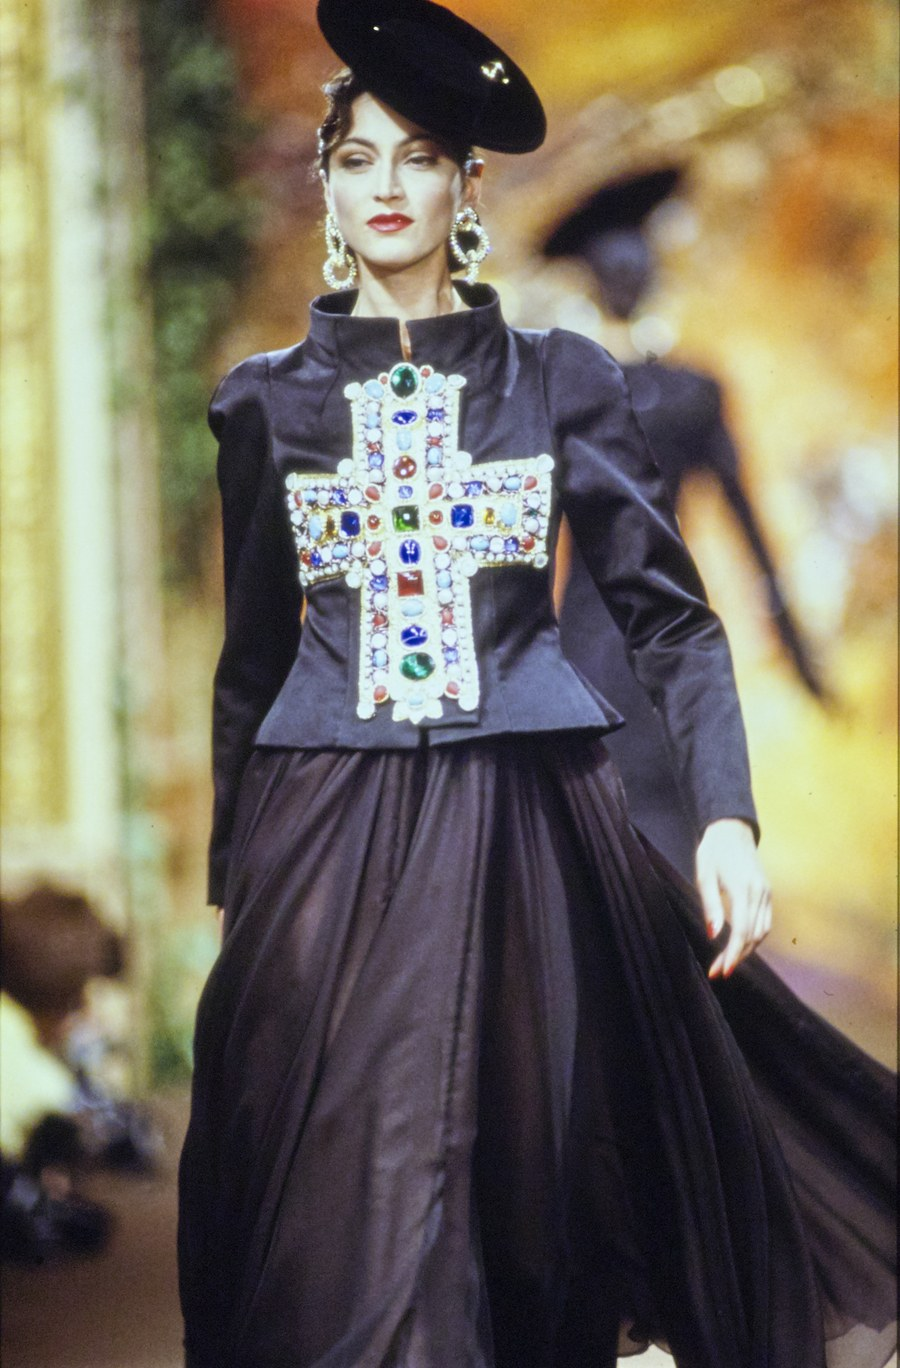 042-christian-lacroix-fall-1988-couture-CN10053654-anne-rohart